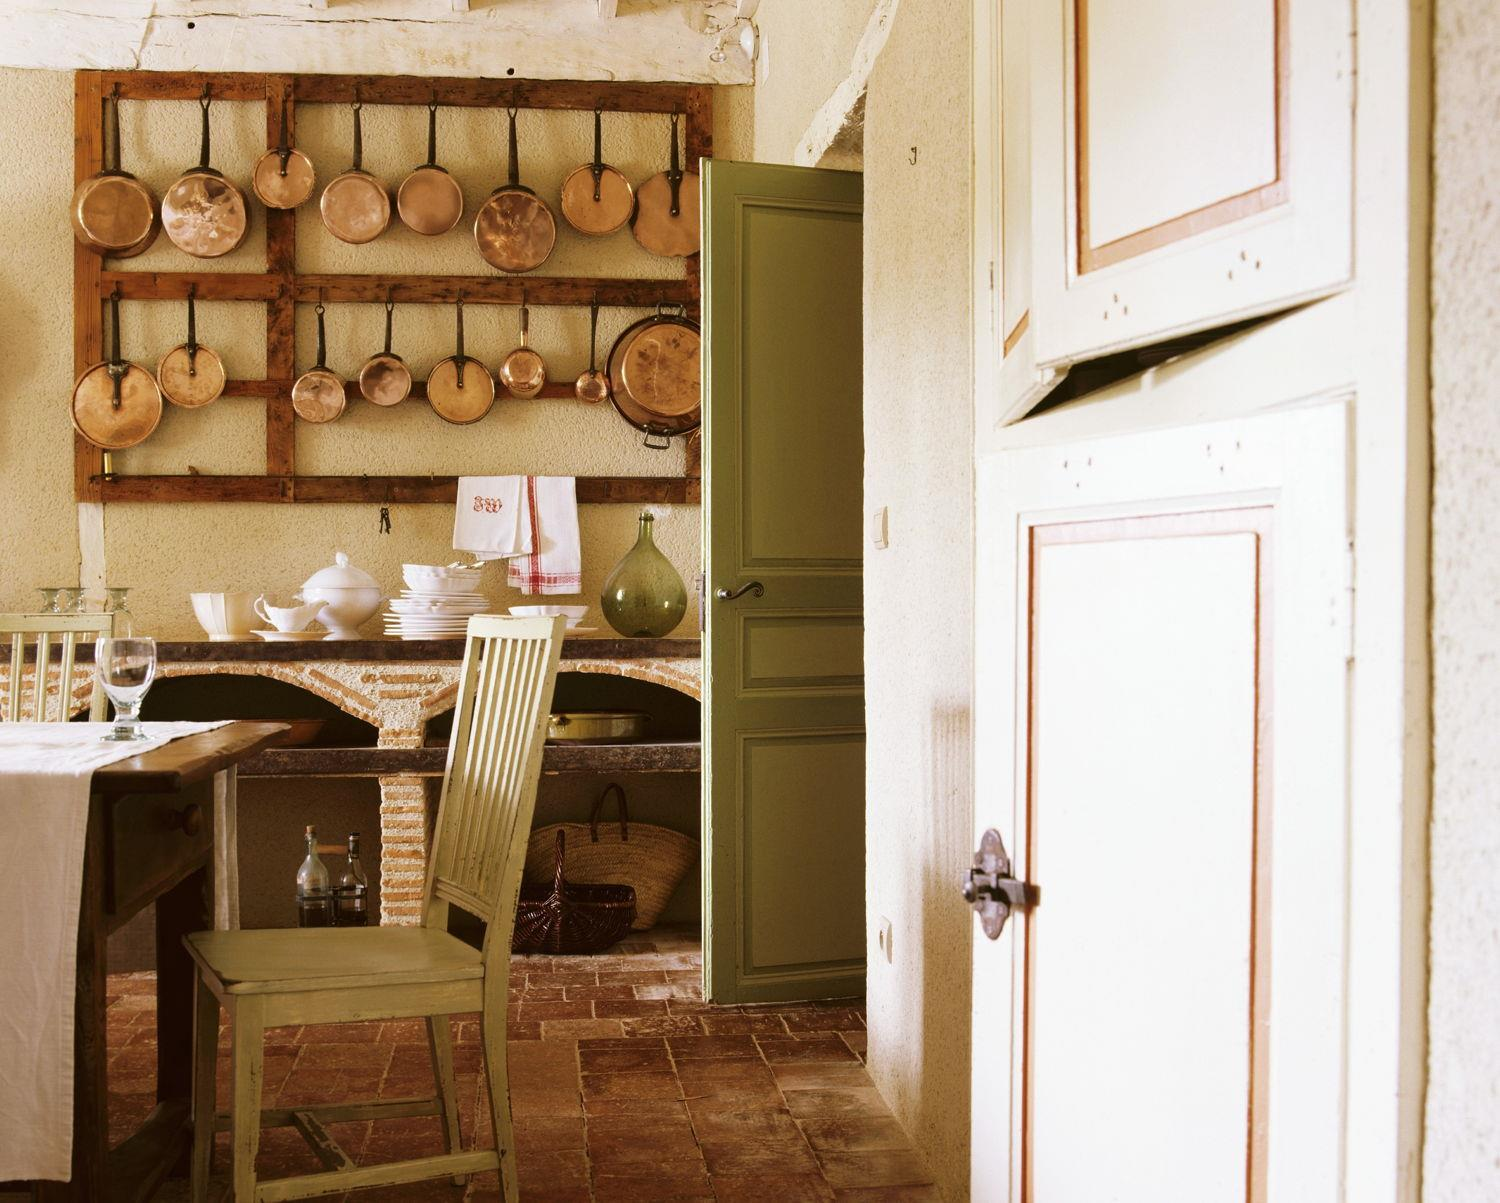 Shabby o country idee per rinnovare l 39 ingresso westwing for Piani di casa in stile country ranch